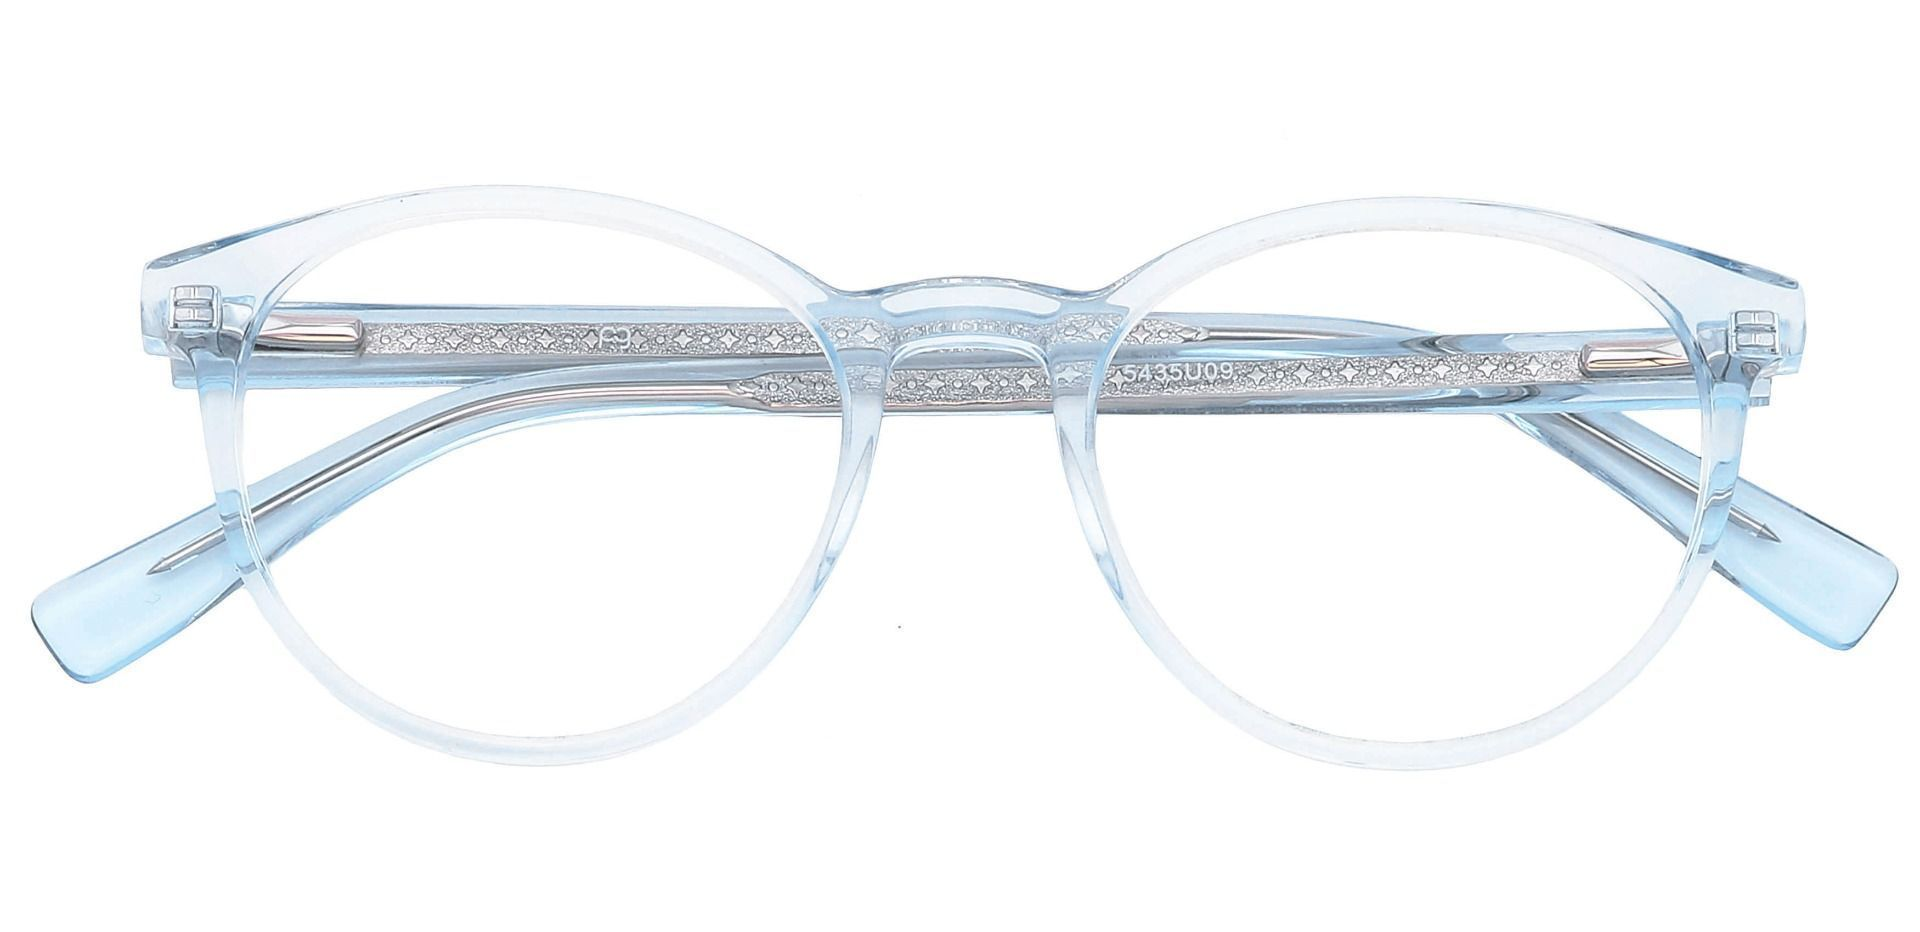 Stellar Oval Lined Bifocal Glasses - The Frame Is Clear With Light Blue